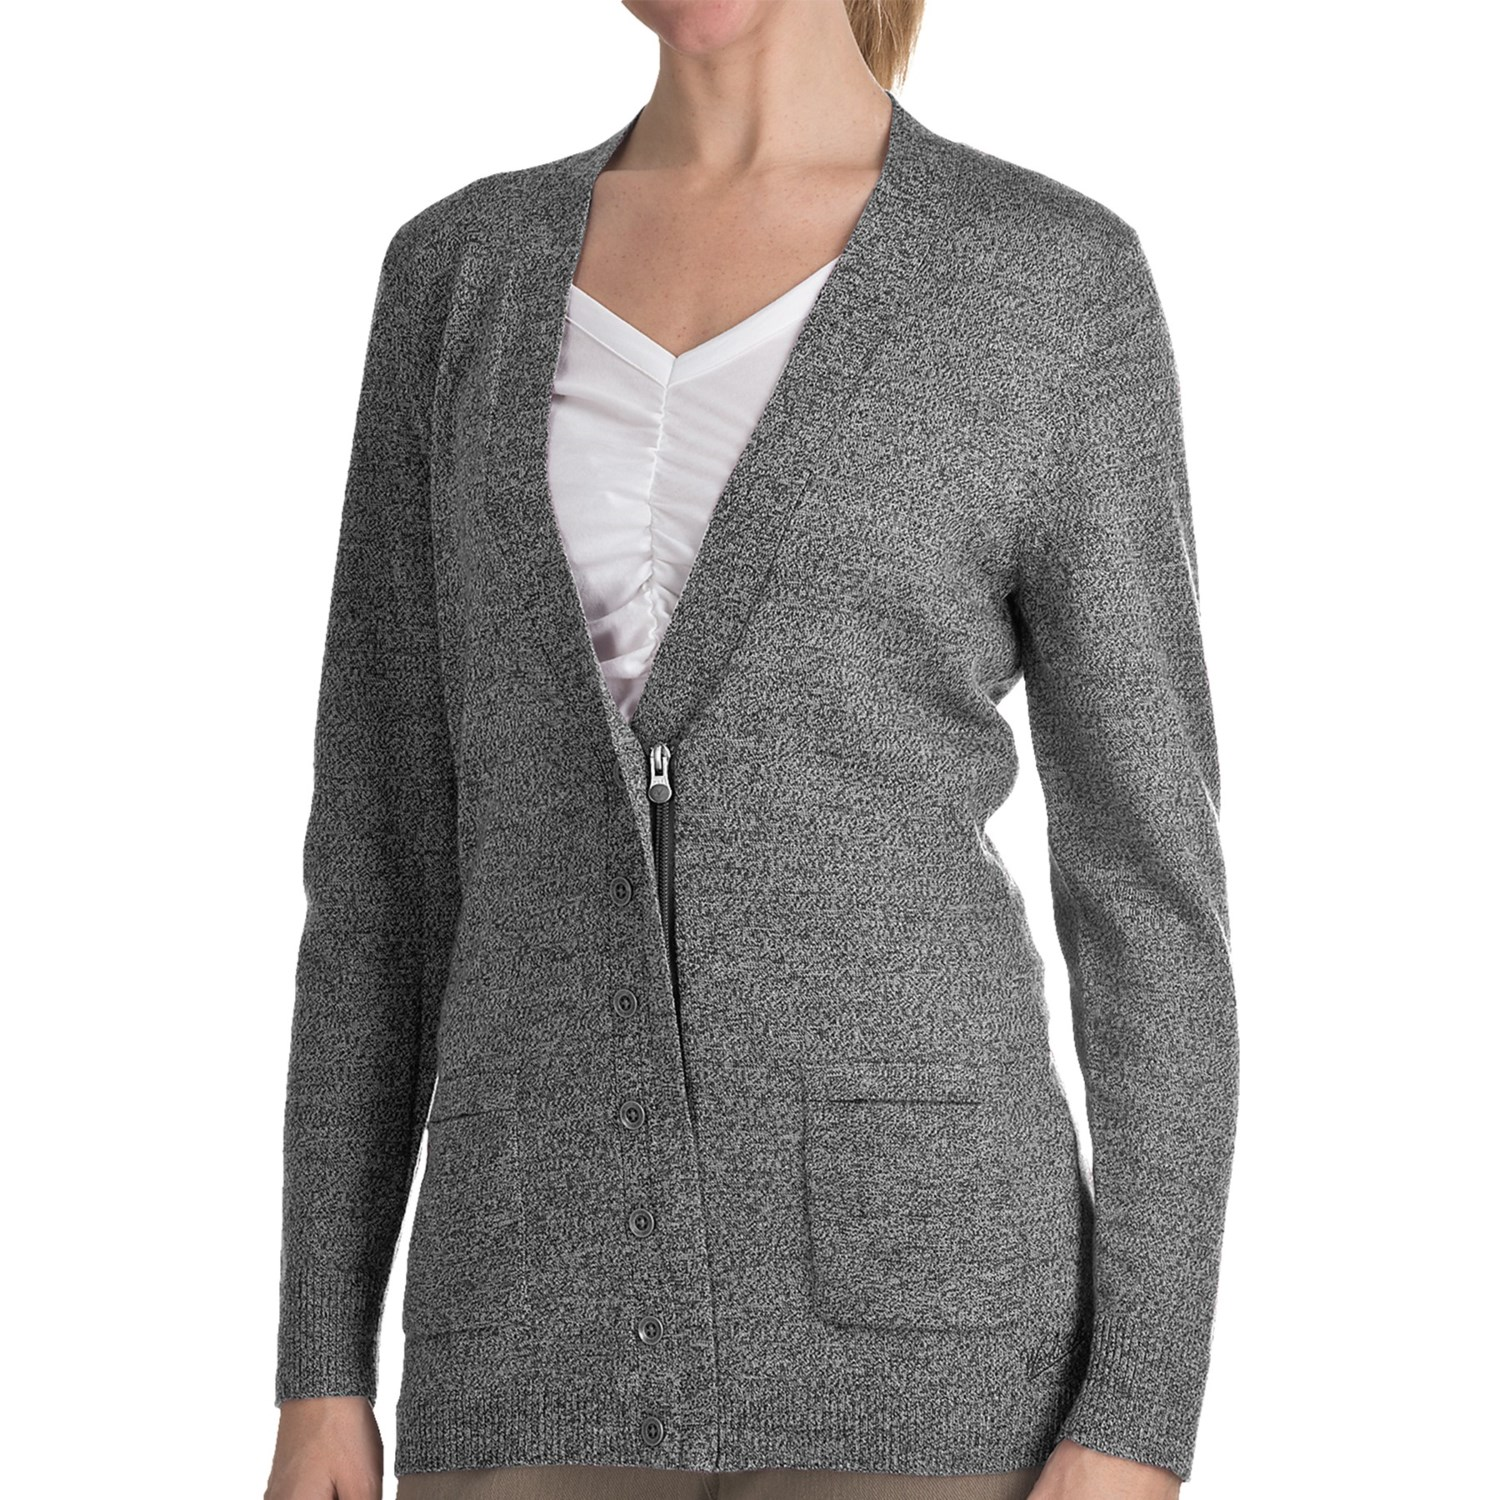 Discover the collection of women's cardigans online: long, short, elegant, in wool or cotton on YOOX. Buy your must-have items online securely!